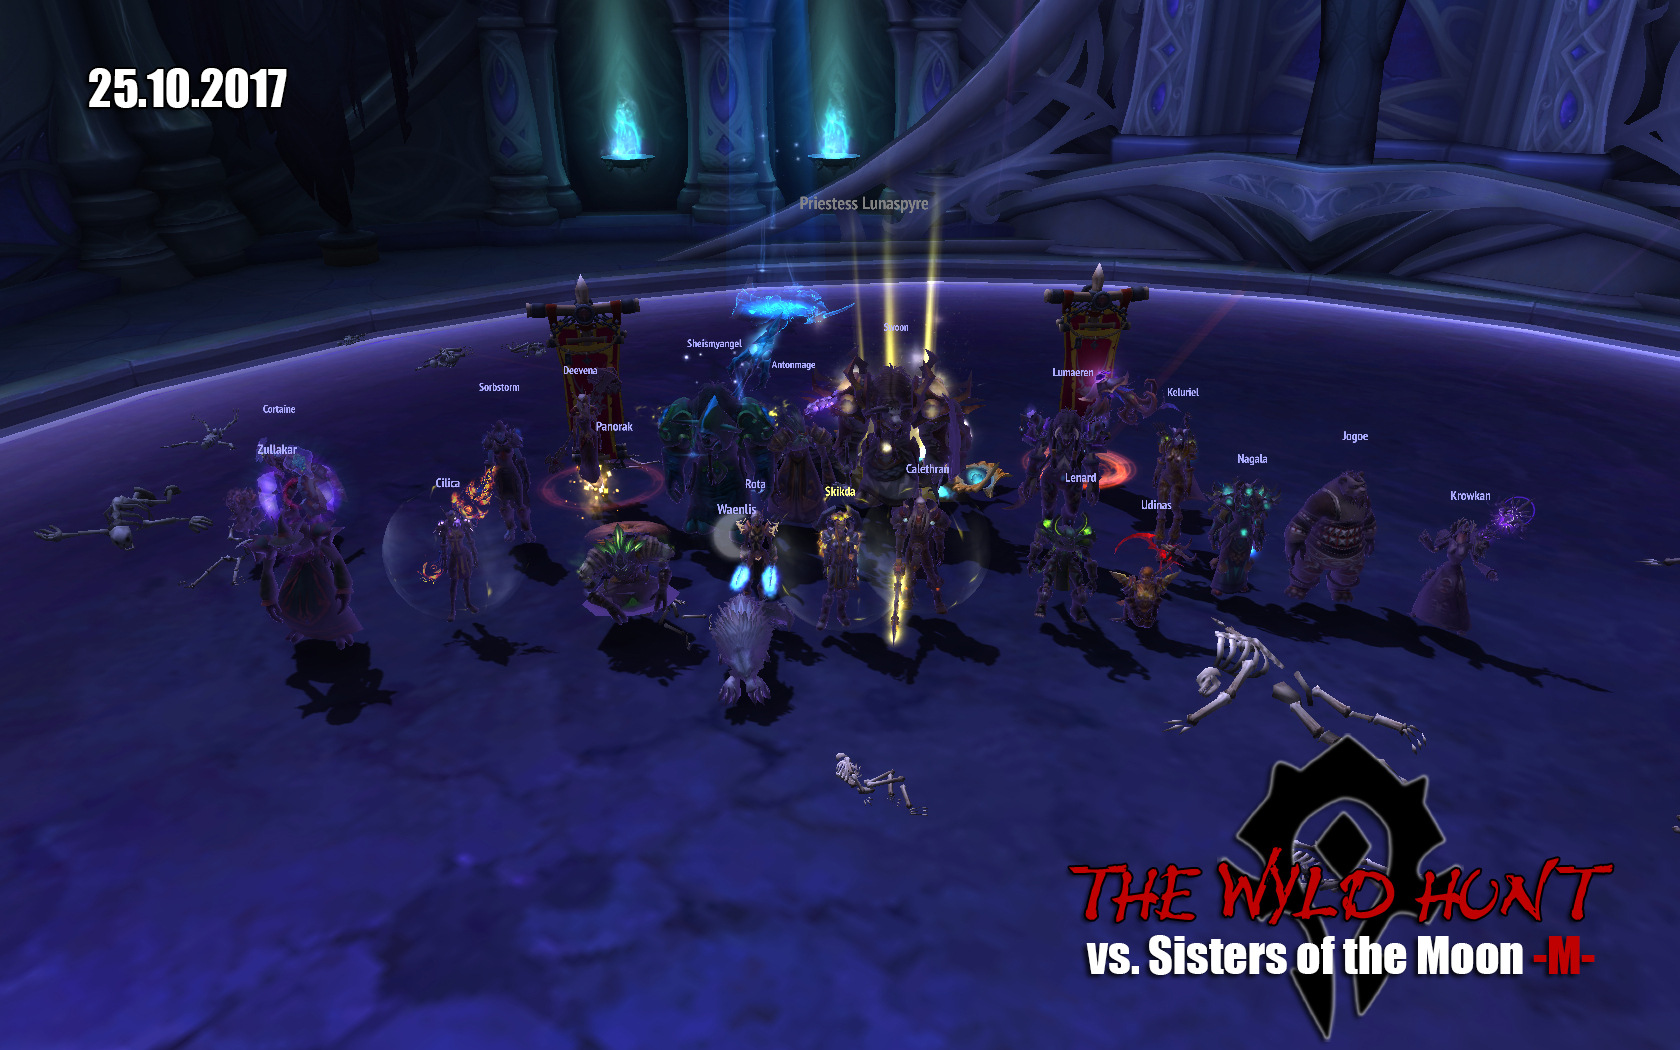 Sisters of the Moon mythic